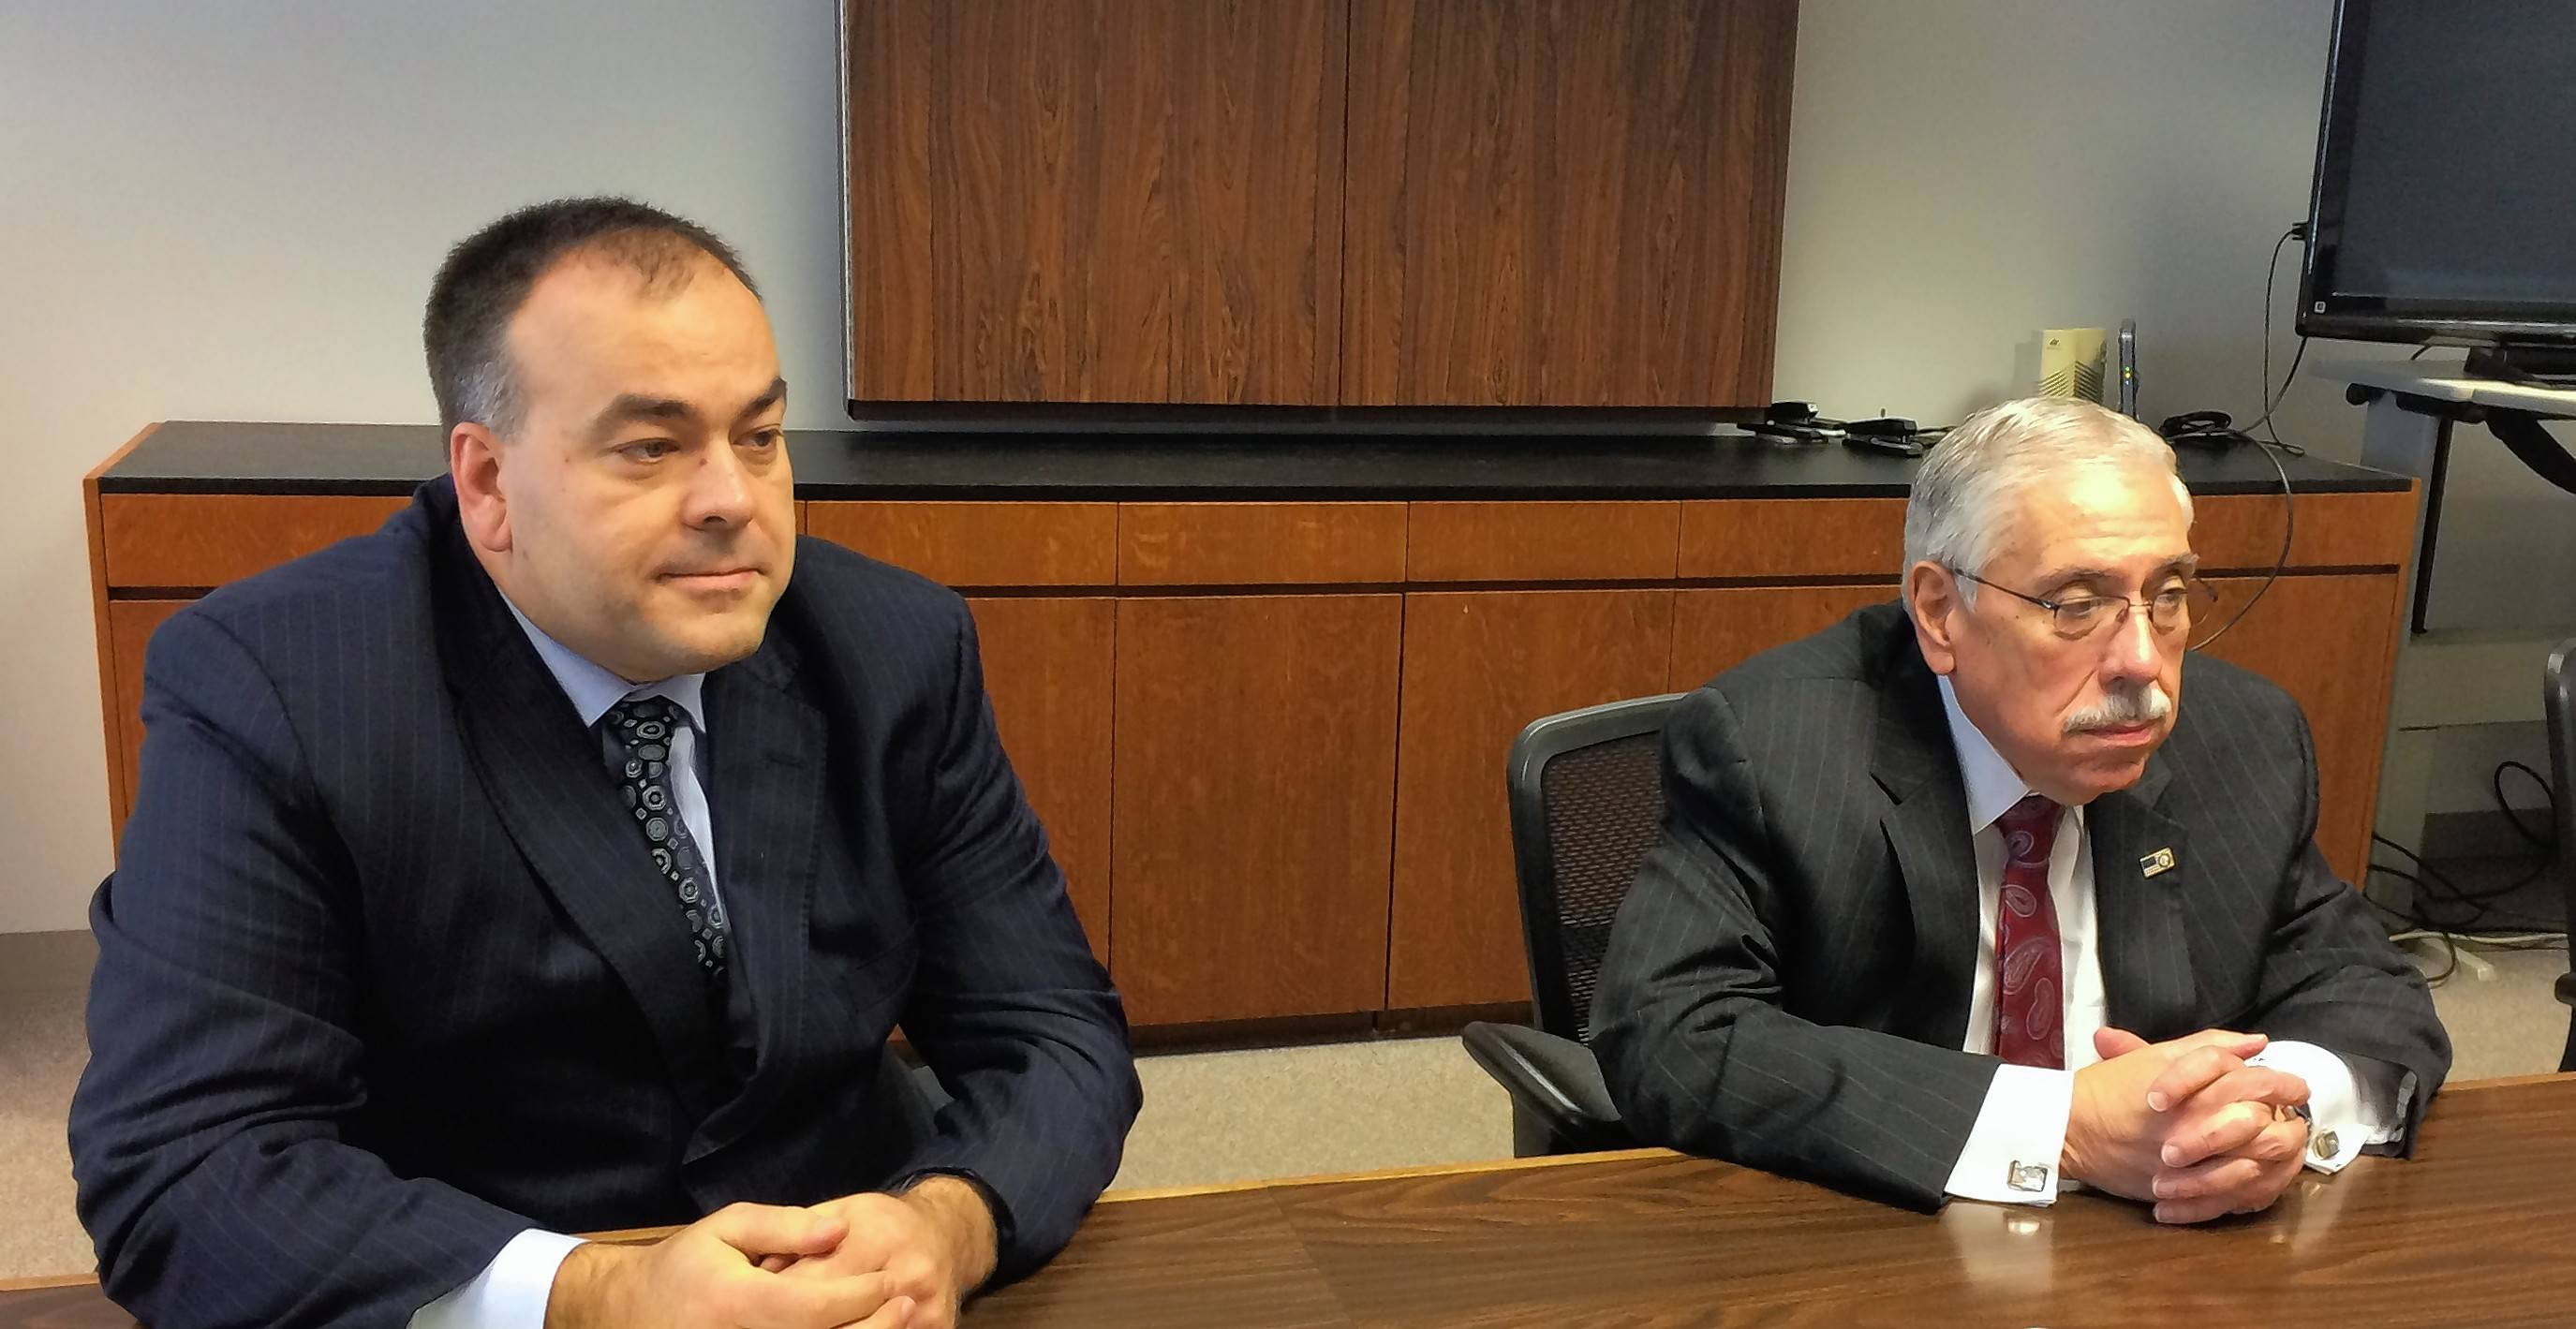 Fritz Kaegi, left, is challenging Cook County Assessor Joseph Berrios in the Democratic primary in March. The men participated in a Daily Herald editorial board joint interview Tuesday. A third candidate, Andrea Raila, could not attend the session.